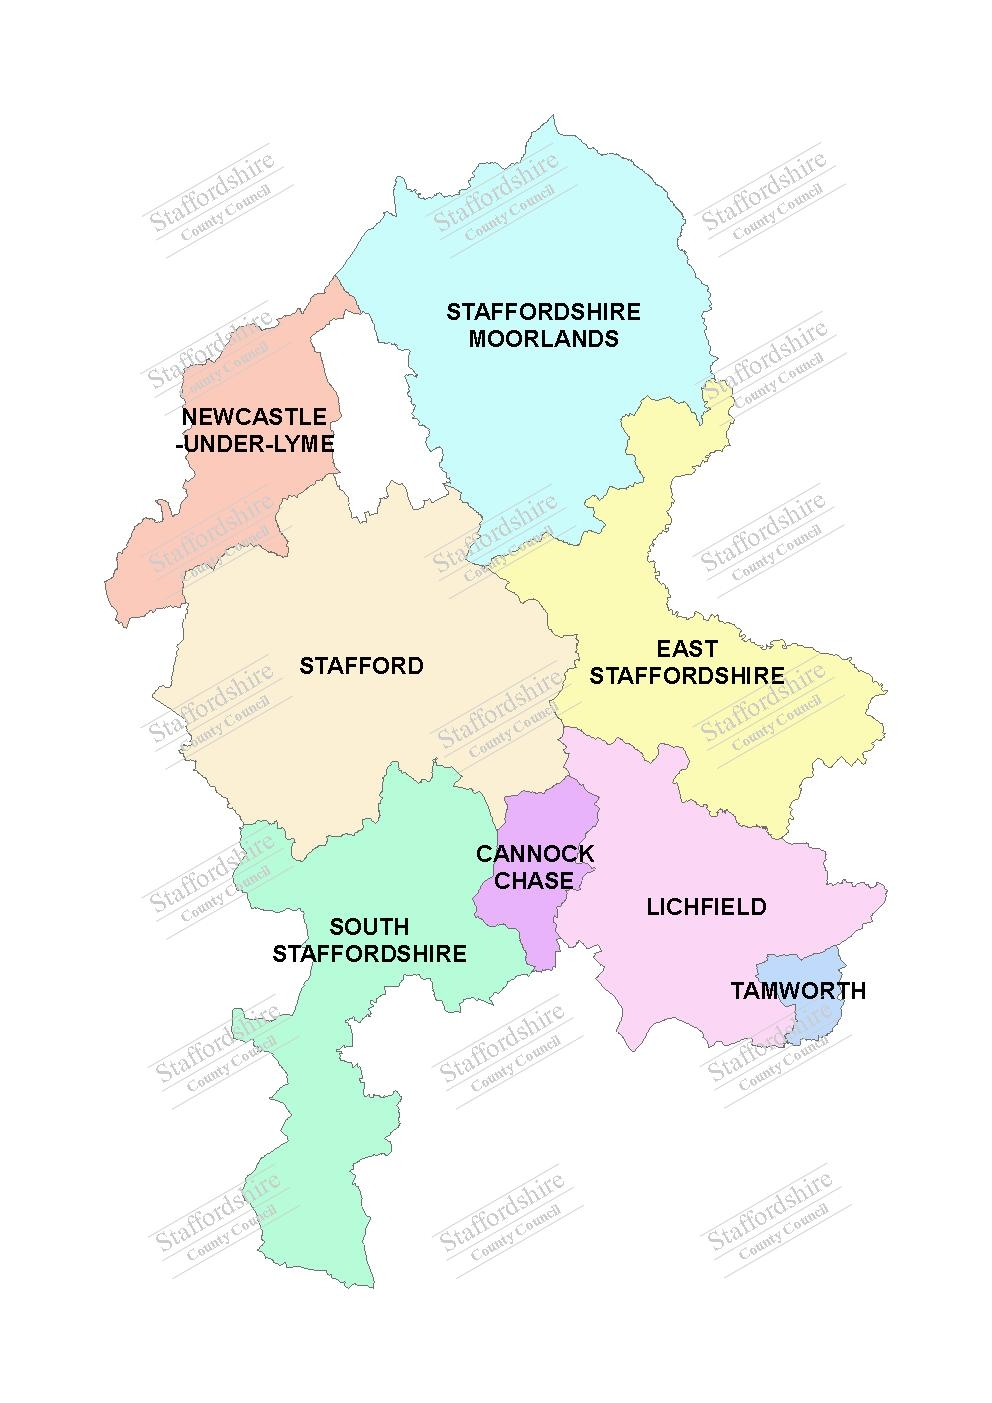 Map of Staffordshire districts